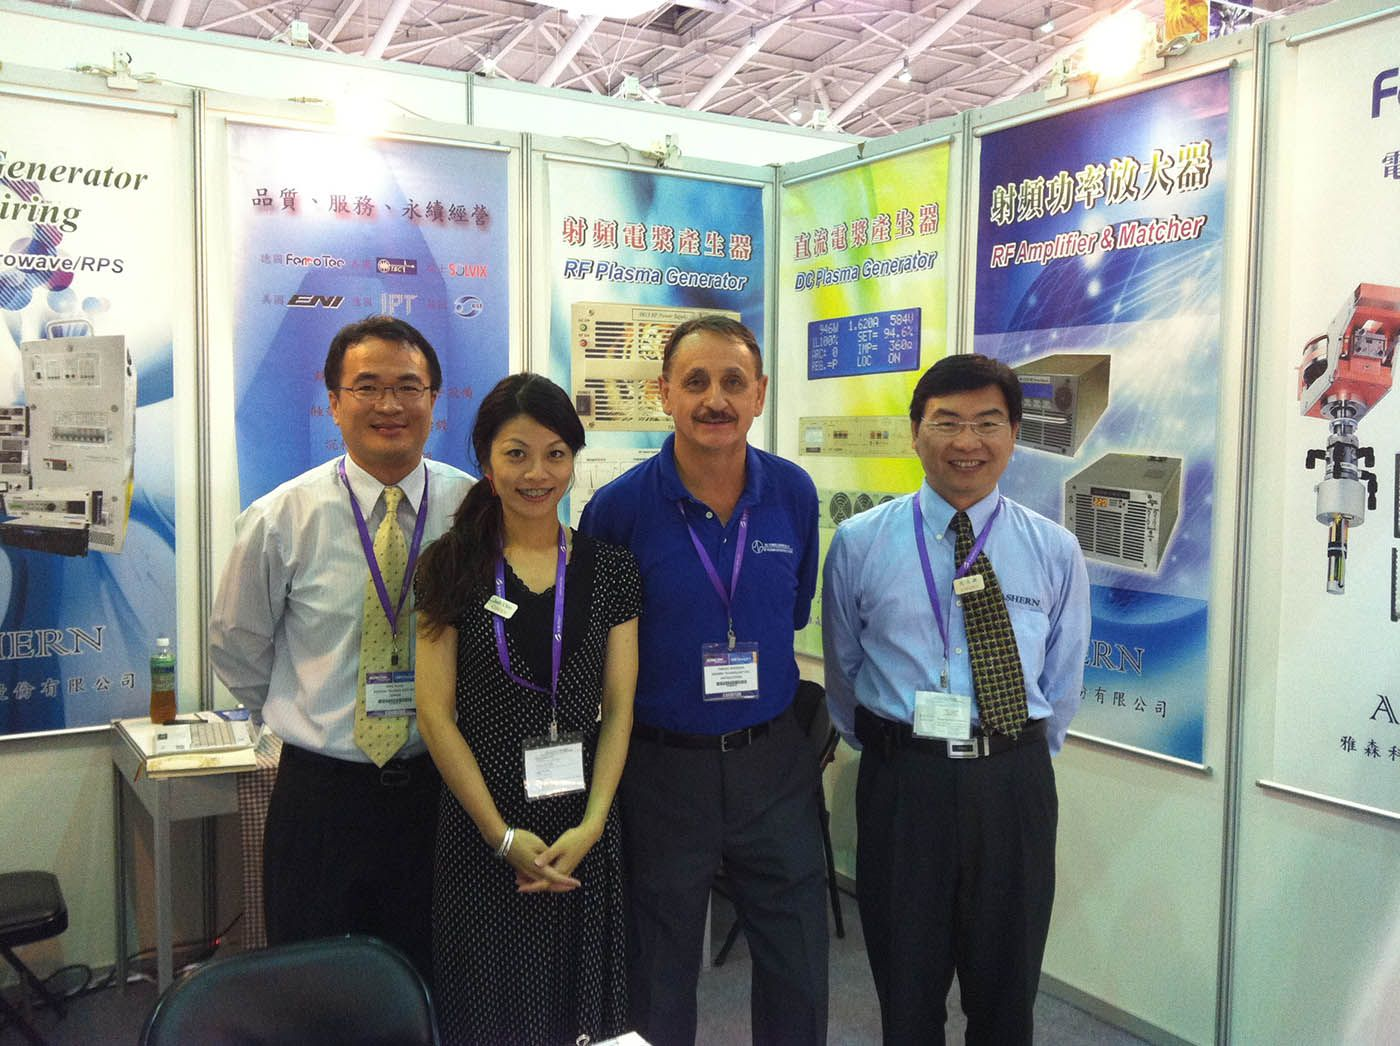 T&C Power with our Taiwanese rep's Ashern at Semicon Taiwan 2013, exhibiting our systems of RF Generators and RF Matching Networks: http://www.tcpowerconversion.com/rfdeliverysystems.php